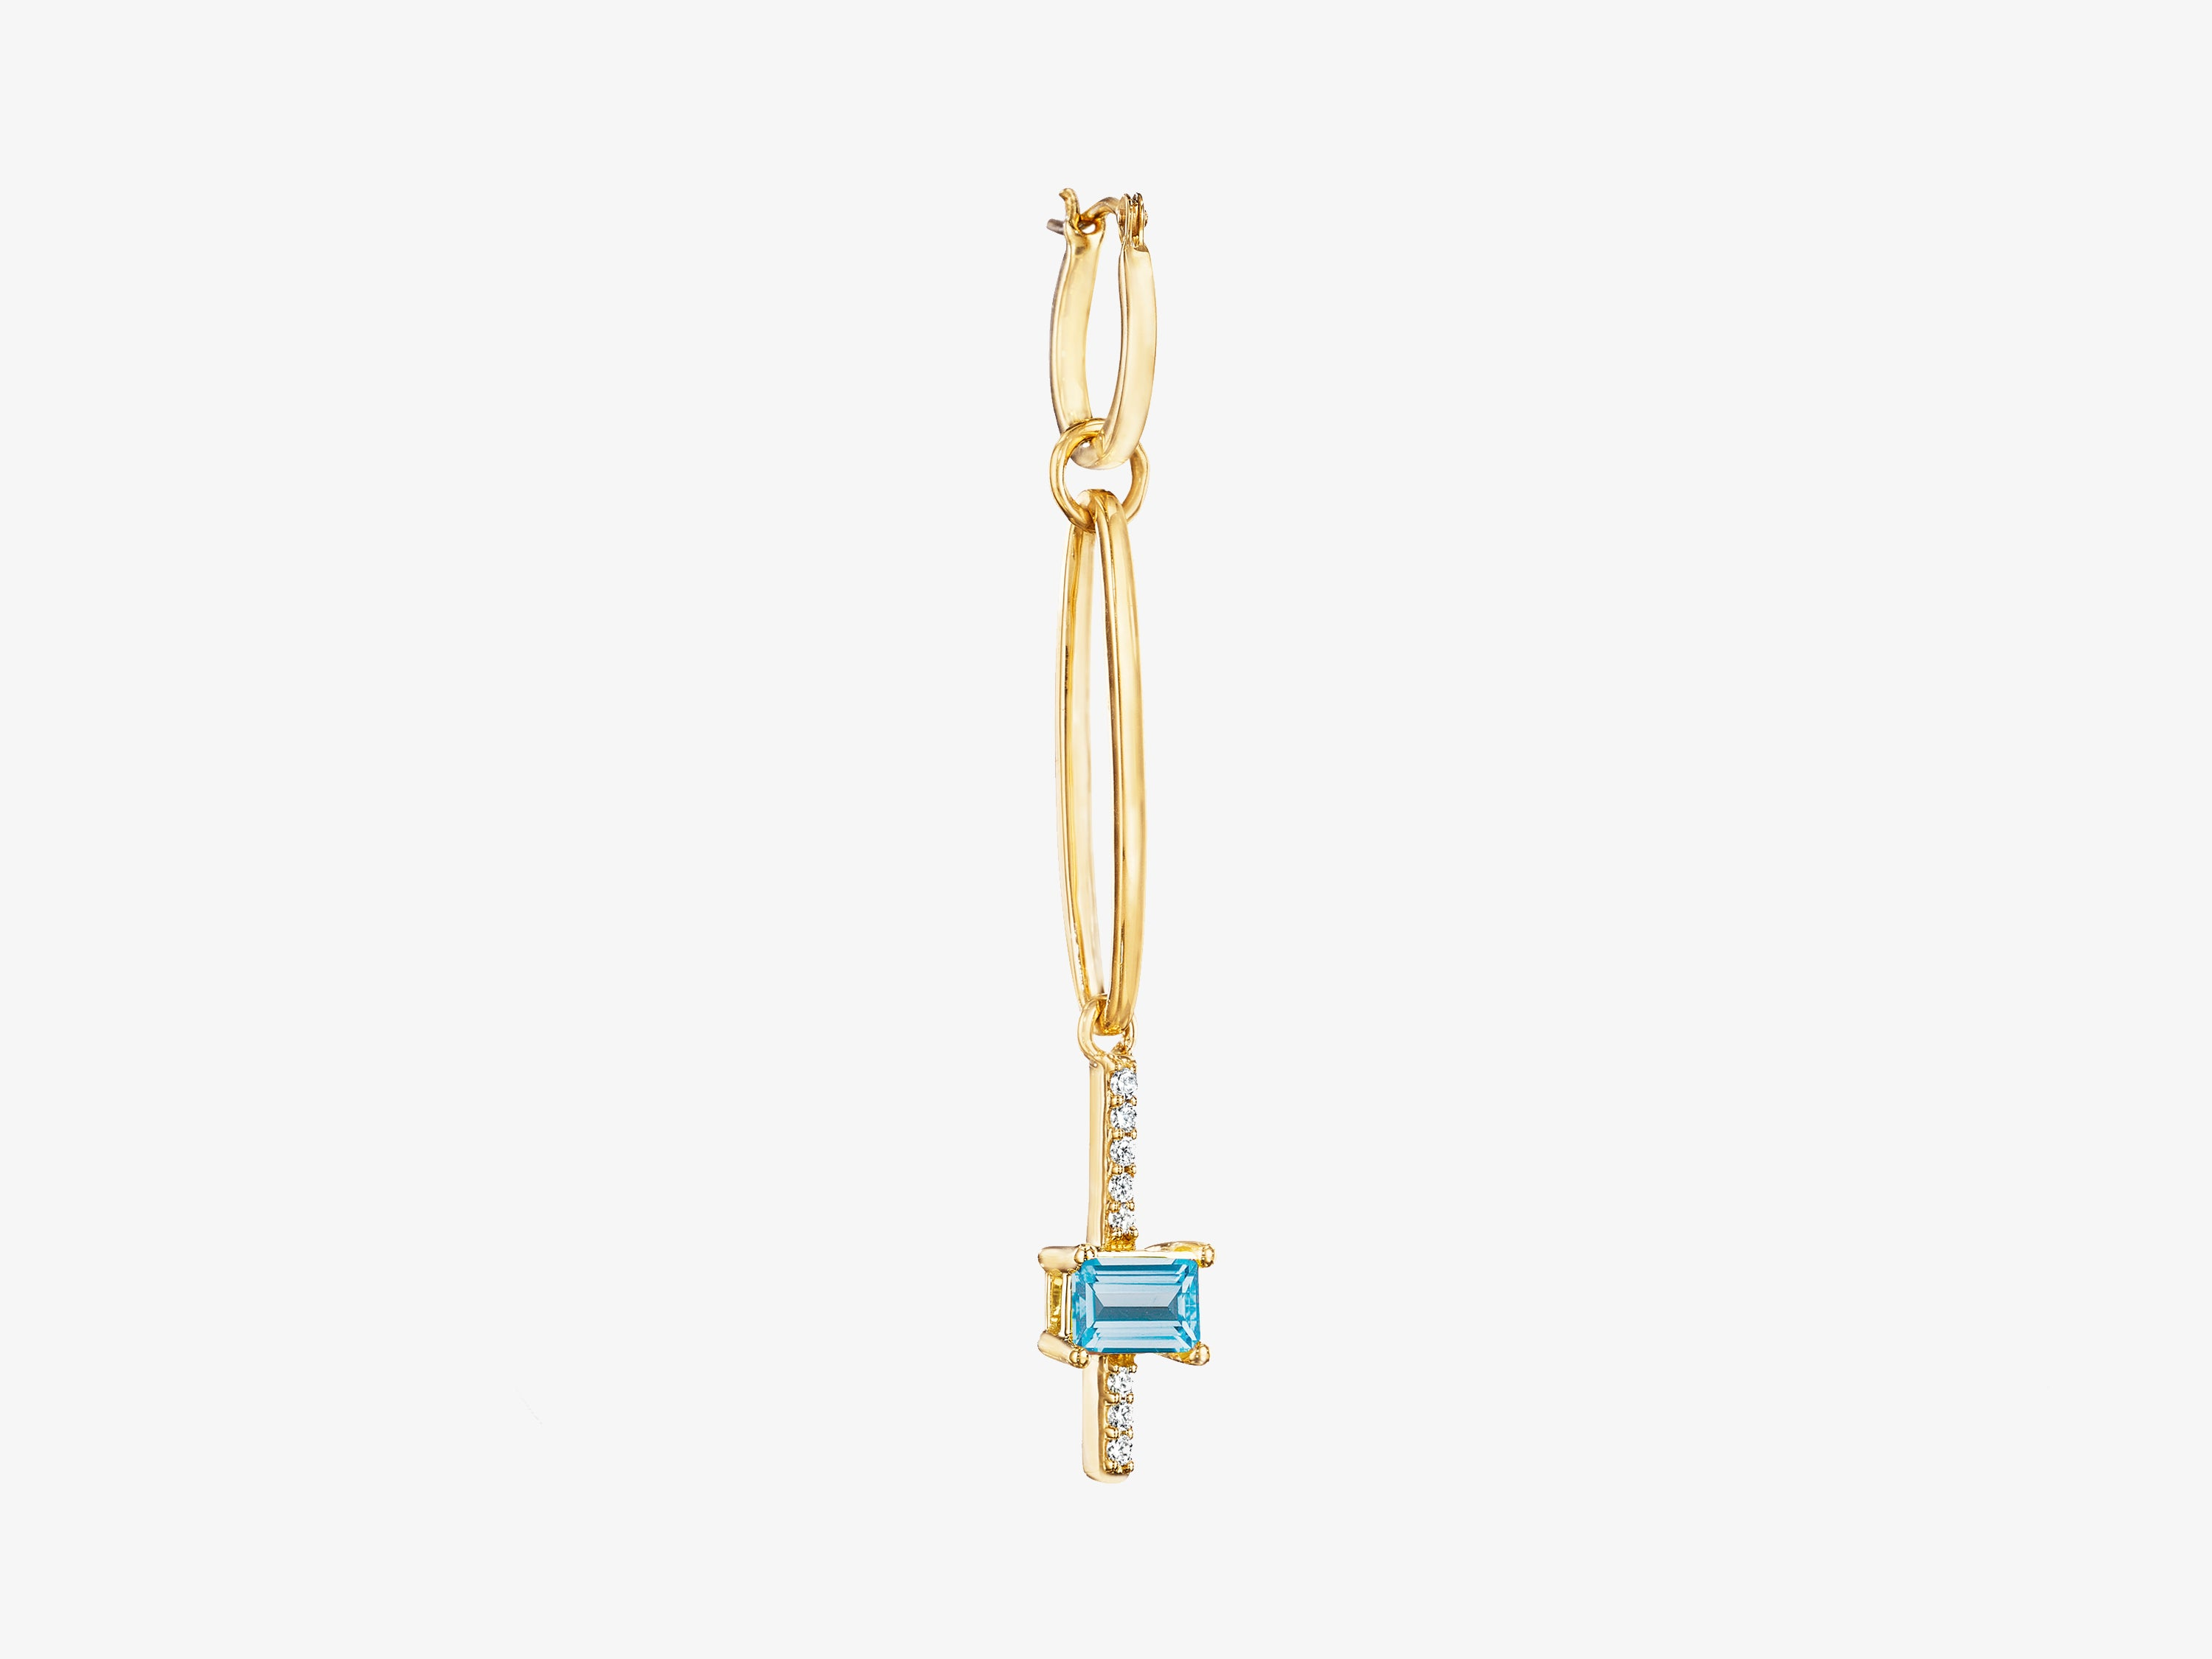 Large Modular Earring with Pave and Rectangular Stone Detail